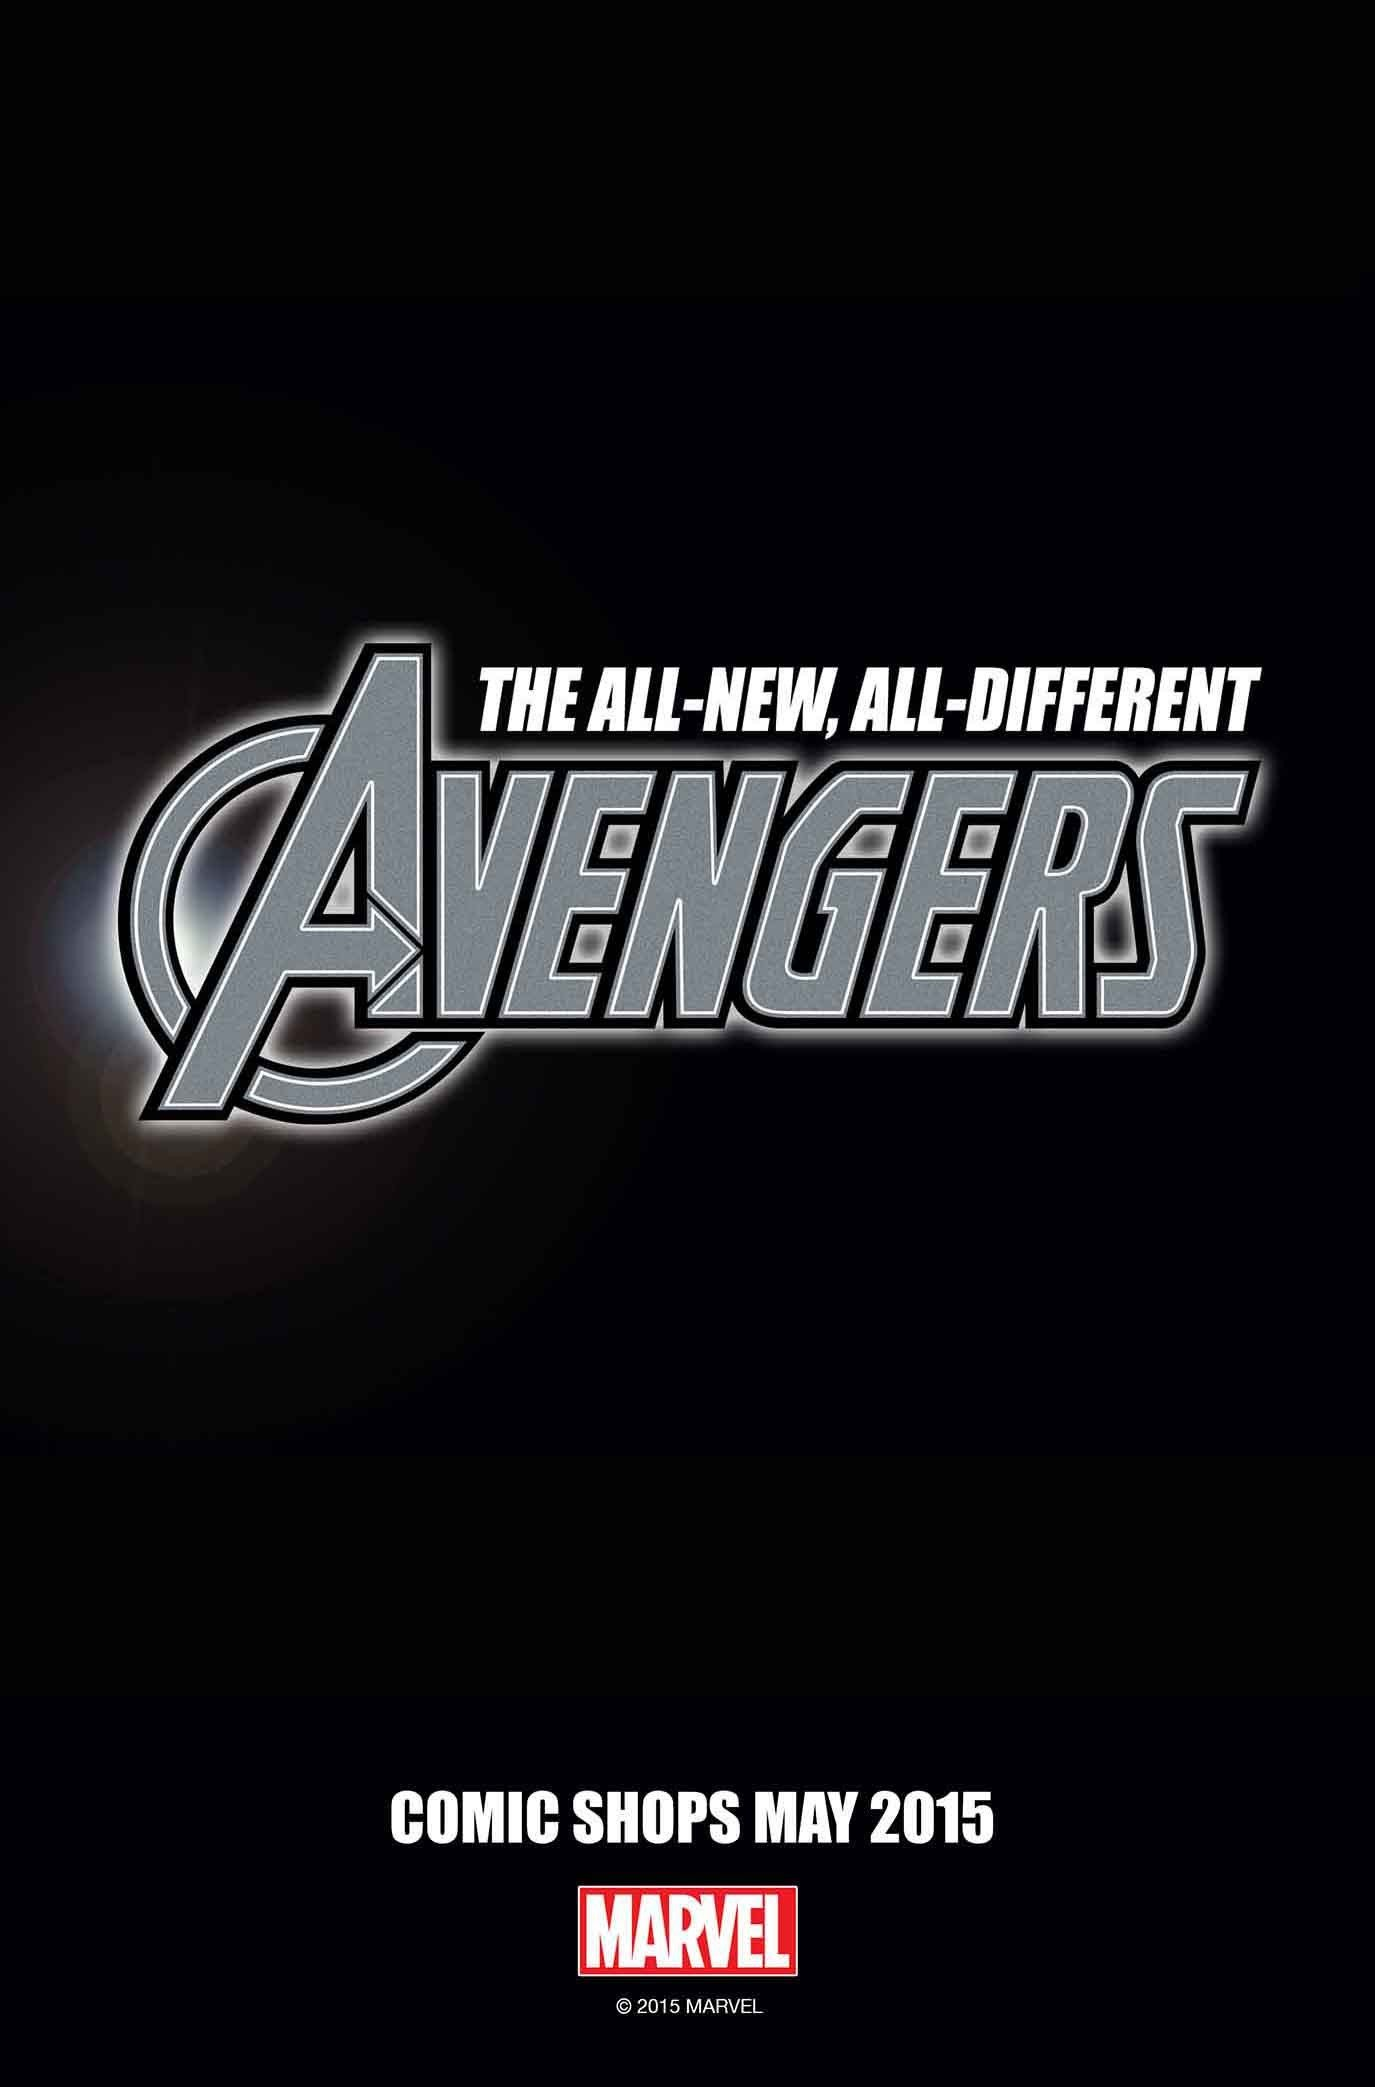 all-new-all-different-avengers-118205